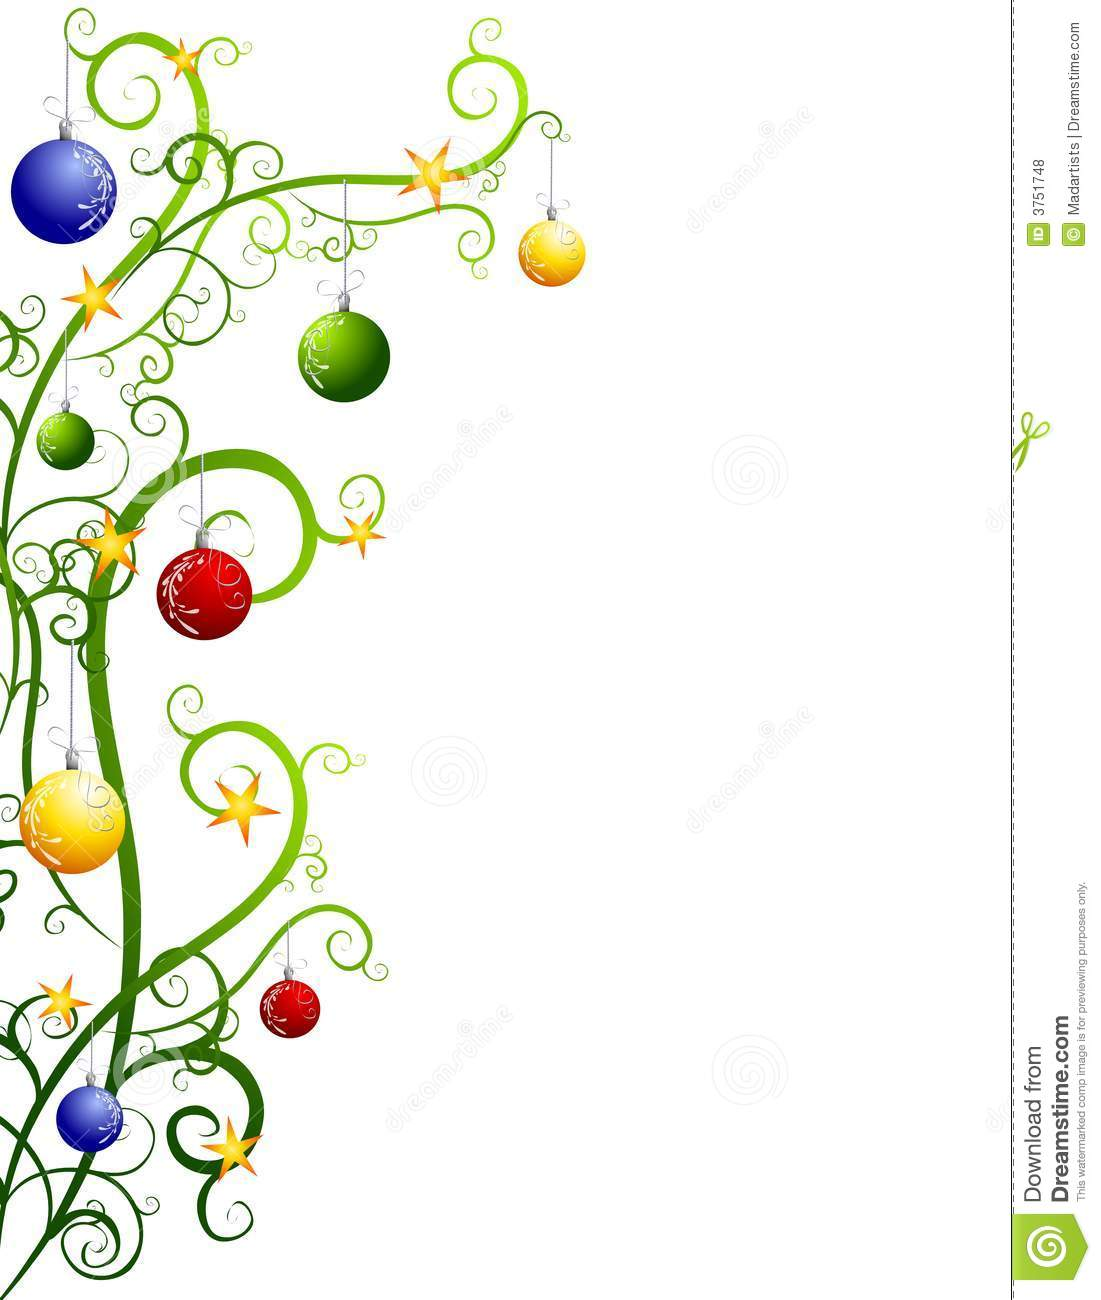 Xmas Borders Clipart Free Free Download Best Xmas